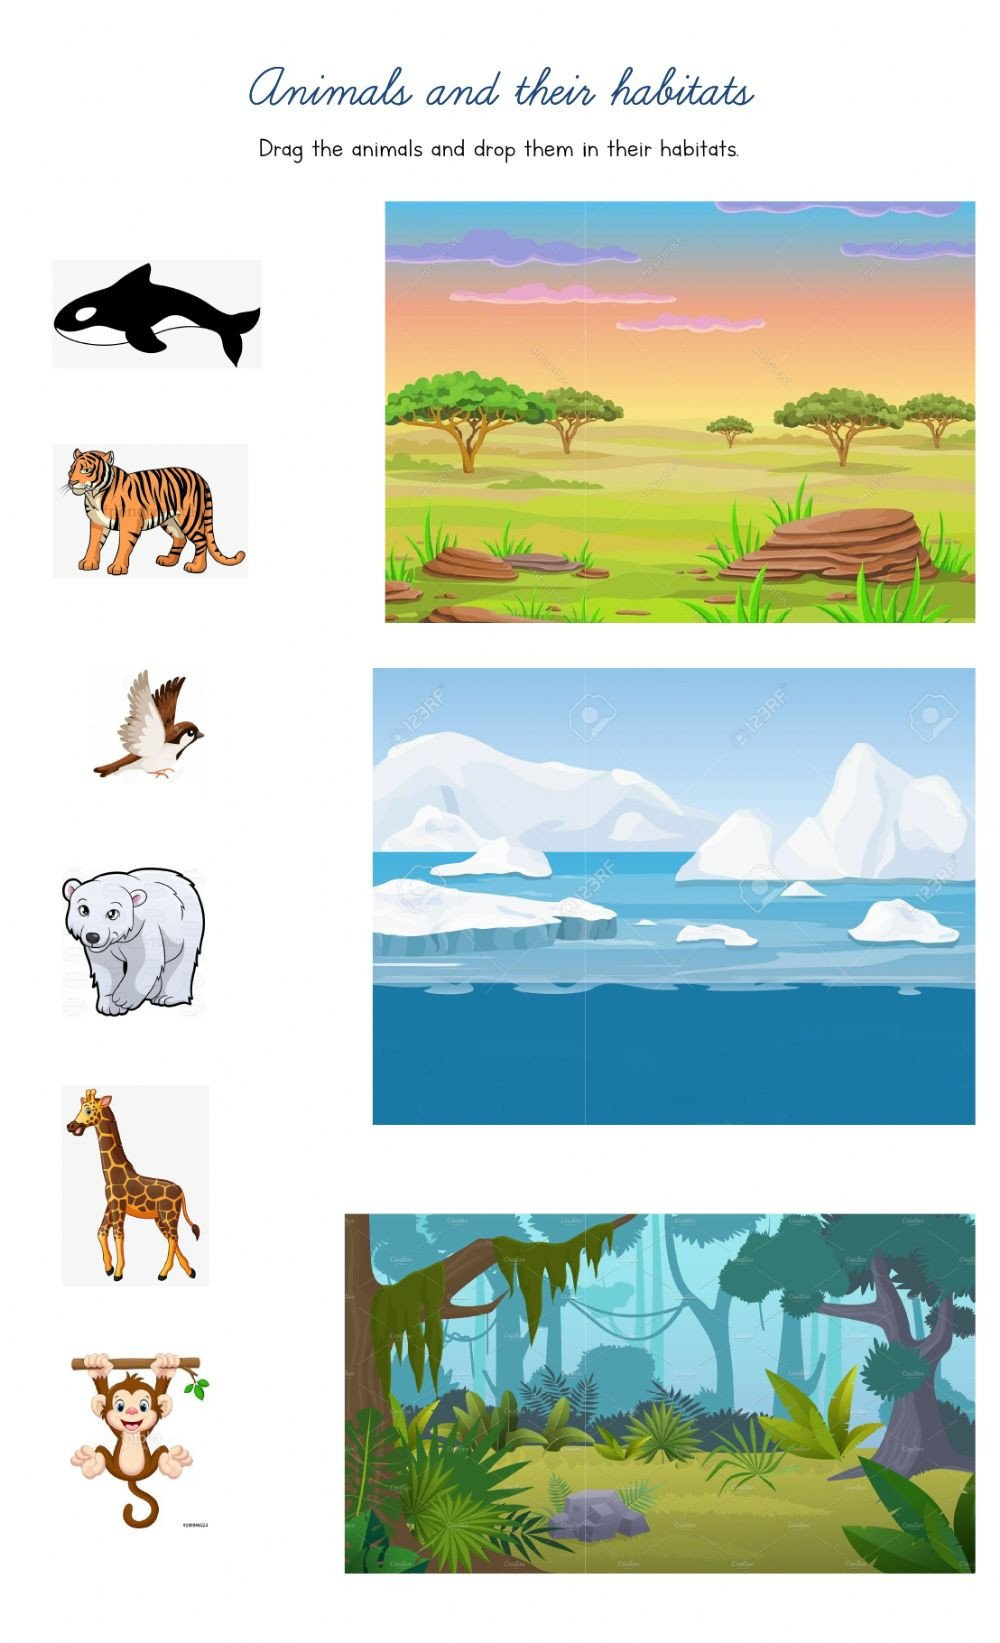 Animals and their habitats drag and drop kc yd